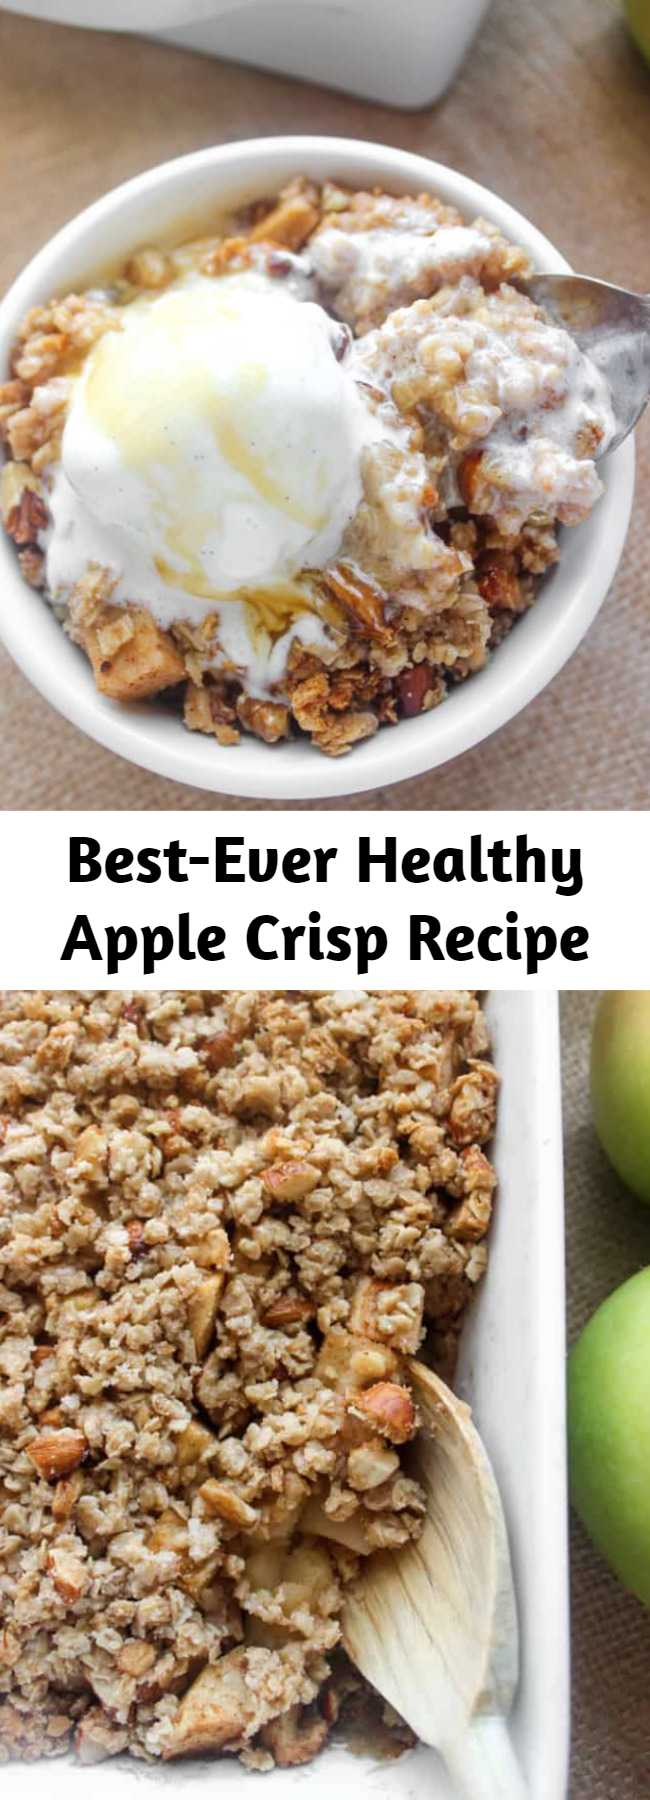 Best-Ever Healthy Apple Crisp Recipe - This healthy apple crisp is loaded with cinnamon apples and sweet crumbly topping. It's free of refined sugar (and has just a touch of maple syrup, although you can sub honey), but you'd never know it. Serve with vanilla ice cream for pure bliss!